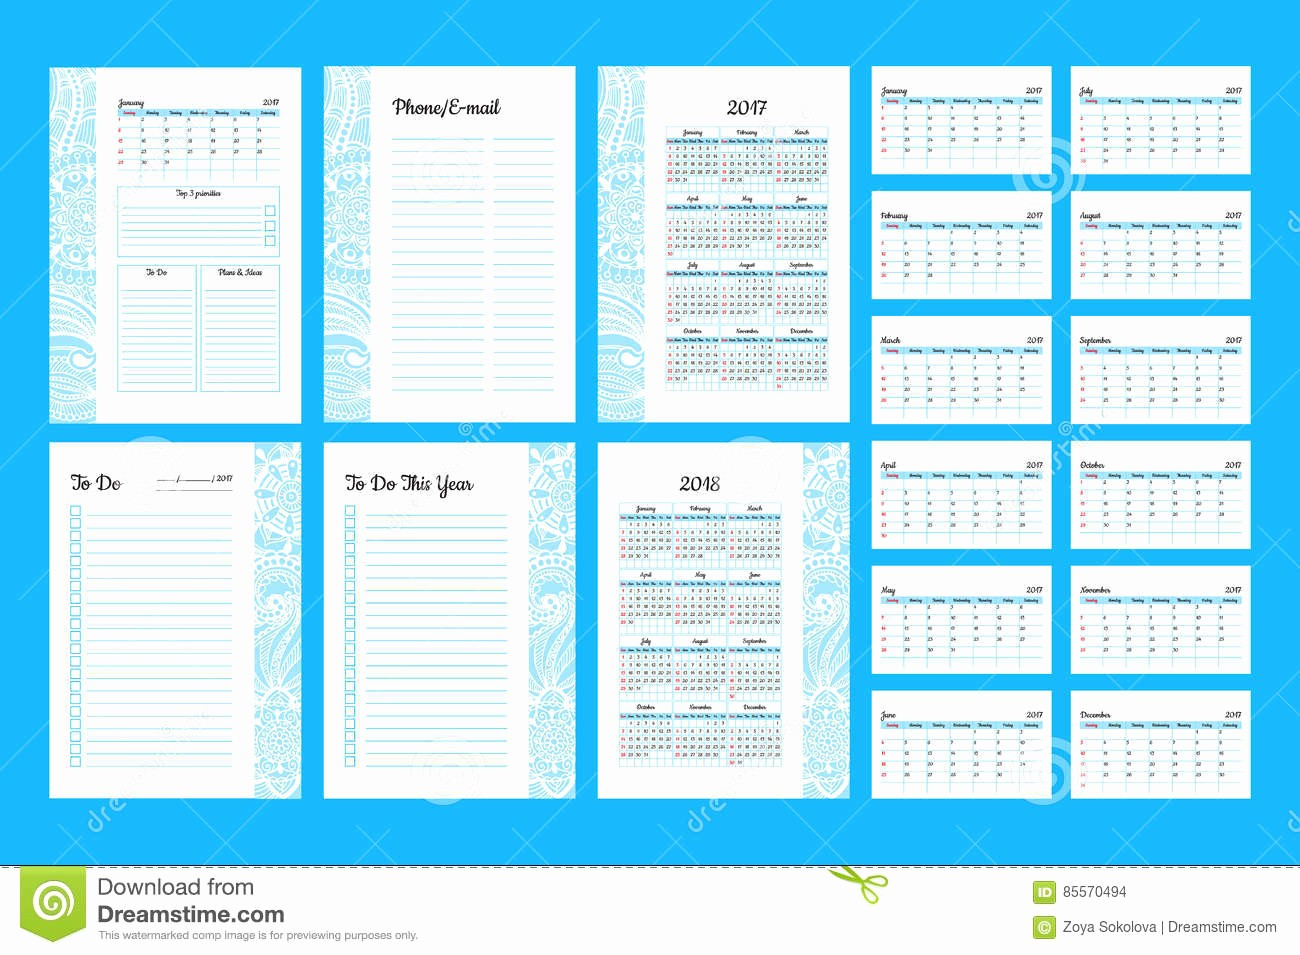 To Do List organizer Template Inspirational Weekly Planner Template organizer and Schedule with Notes